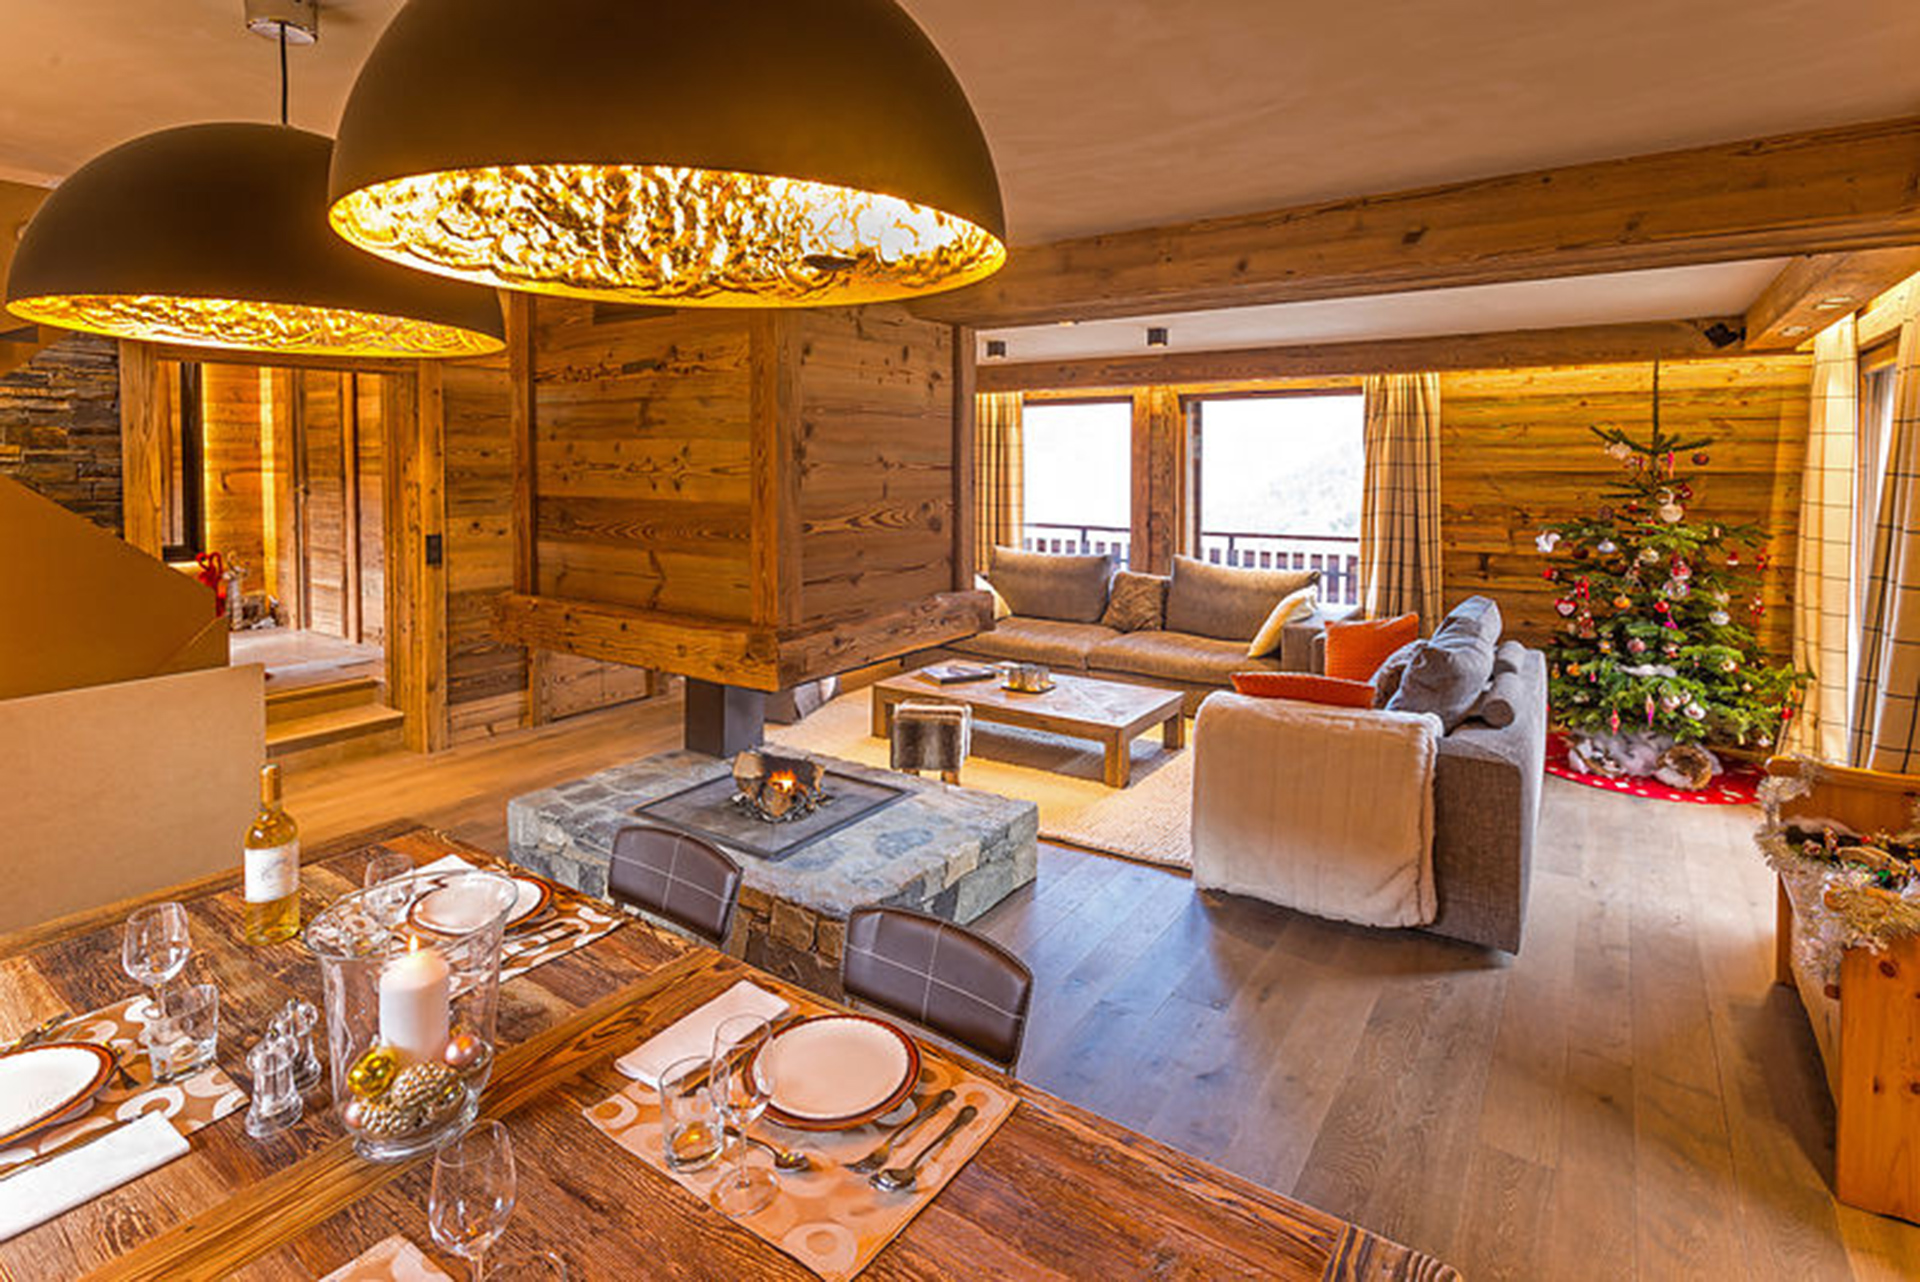 Decorateur Interieur Megeve